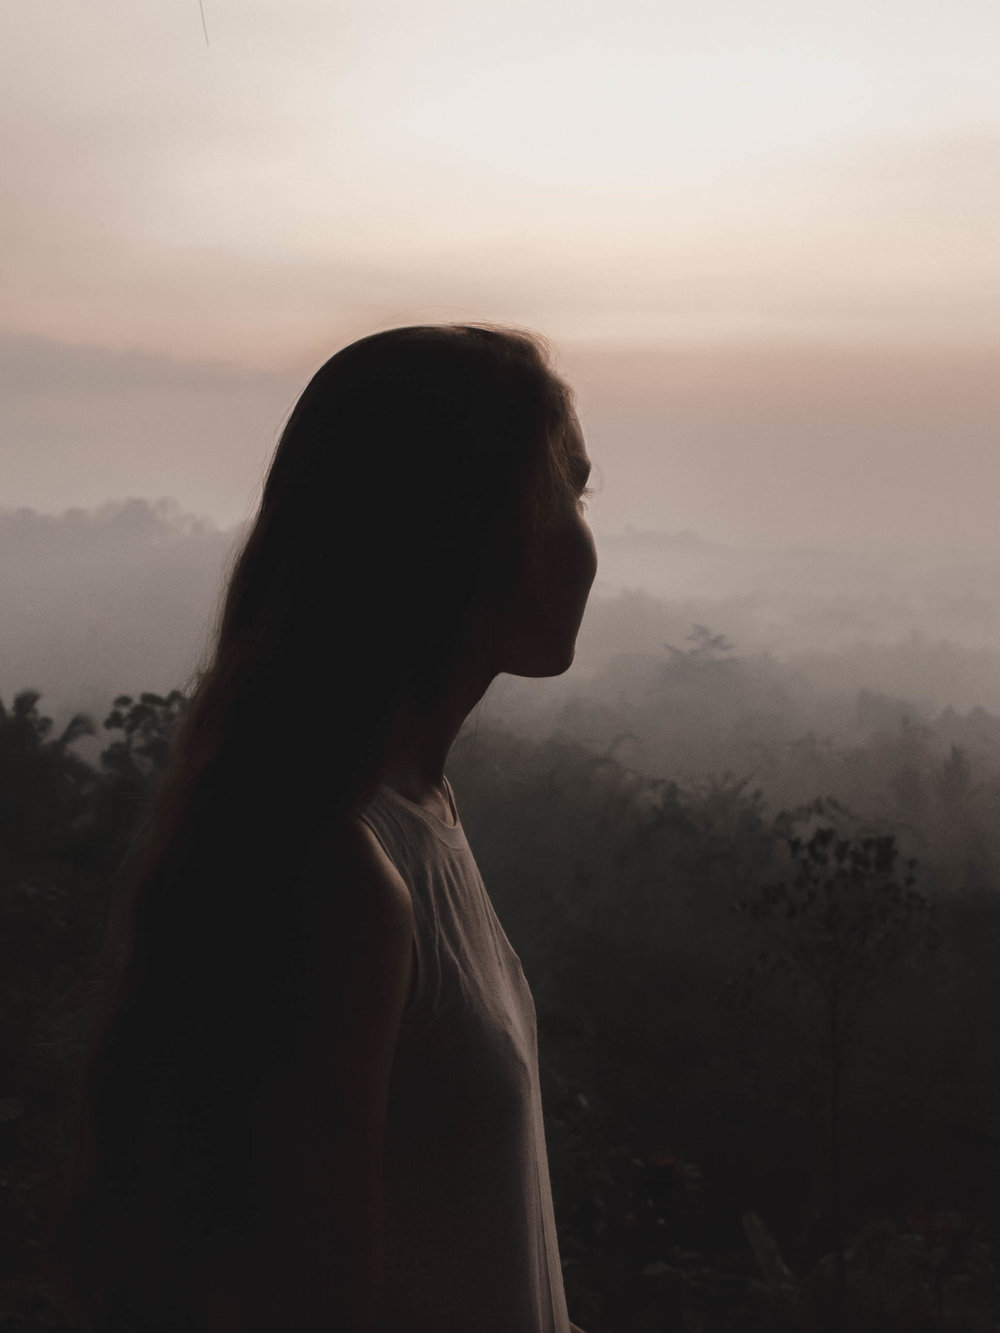 Watching the sunrise near Borobudur temple in Indonesia